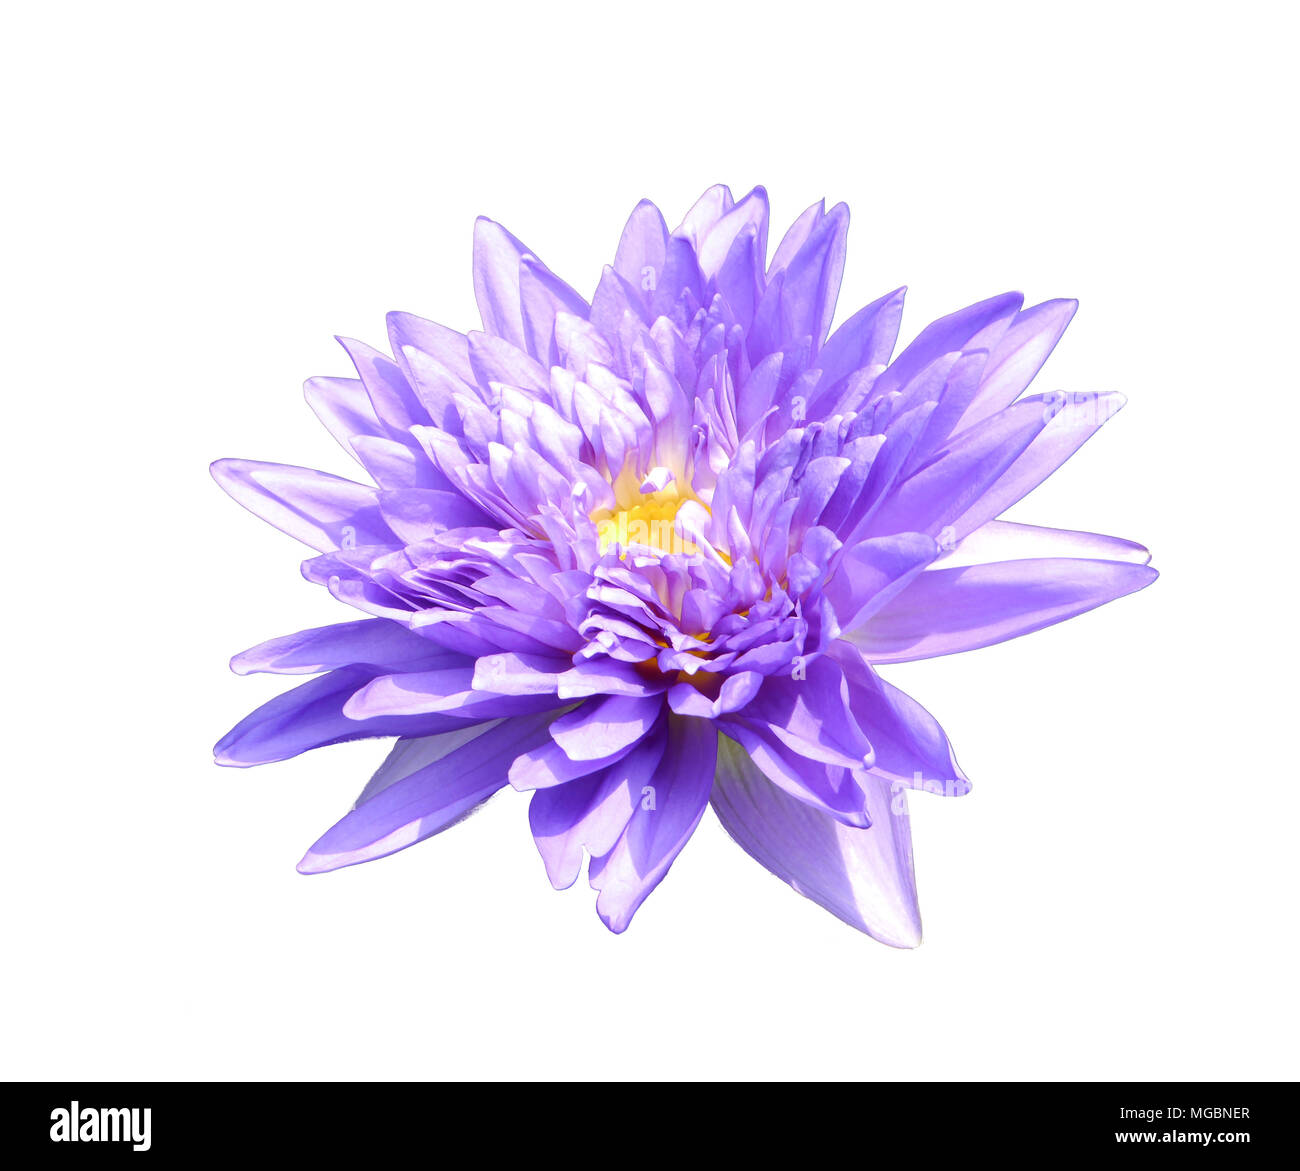 Lotus Flower Silhouette Stock Photos Amp Lotus Flower